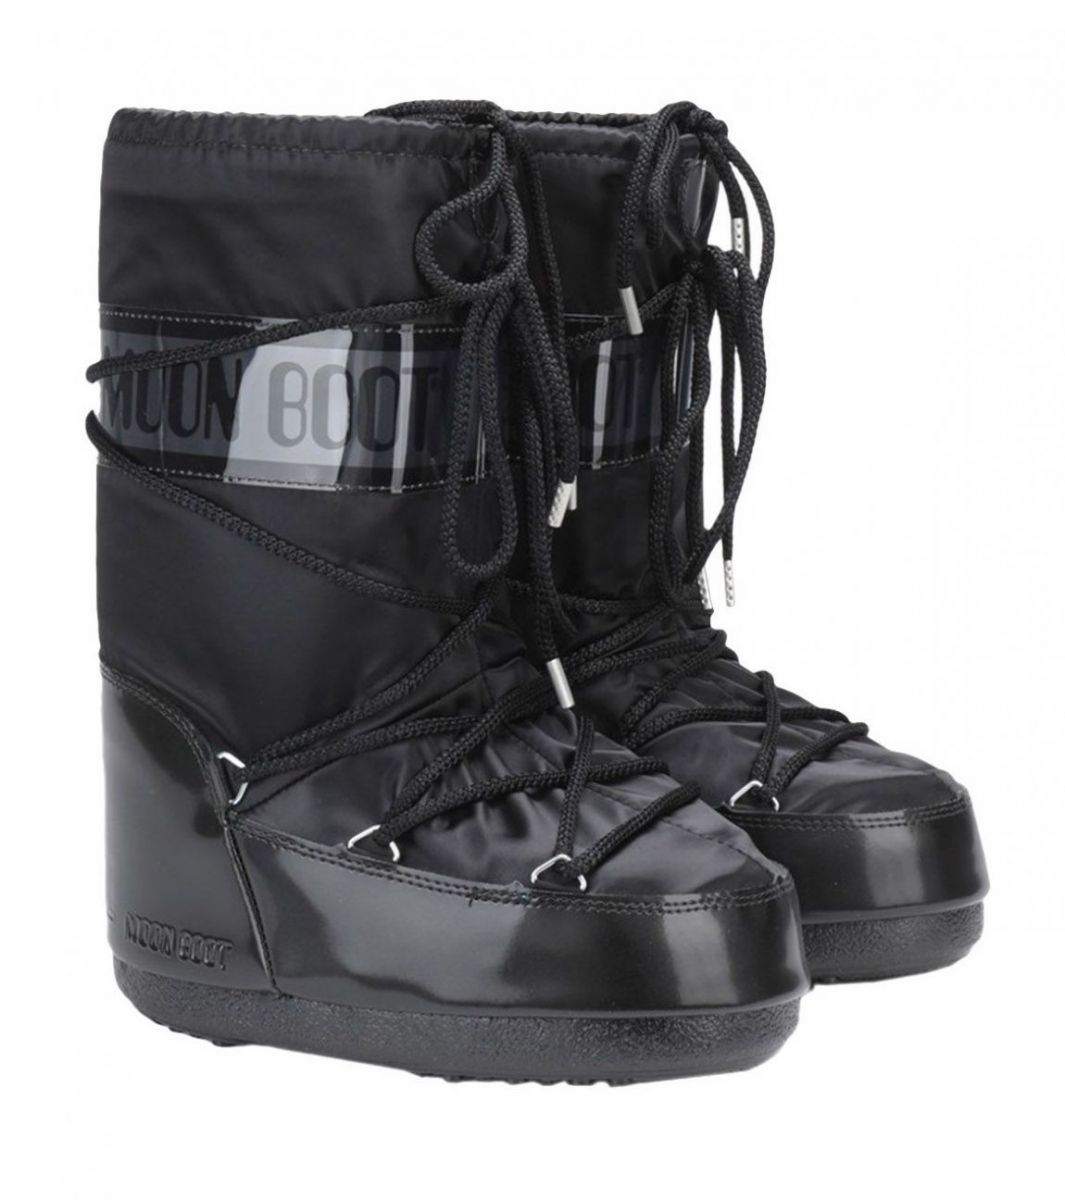 Moon Boot Glance Black / 23-26.